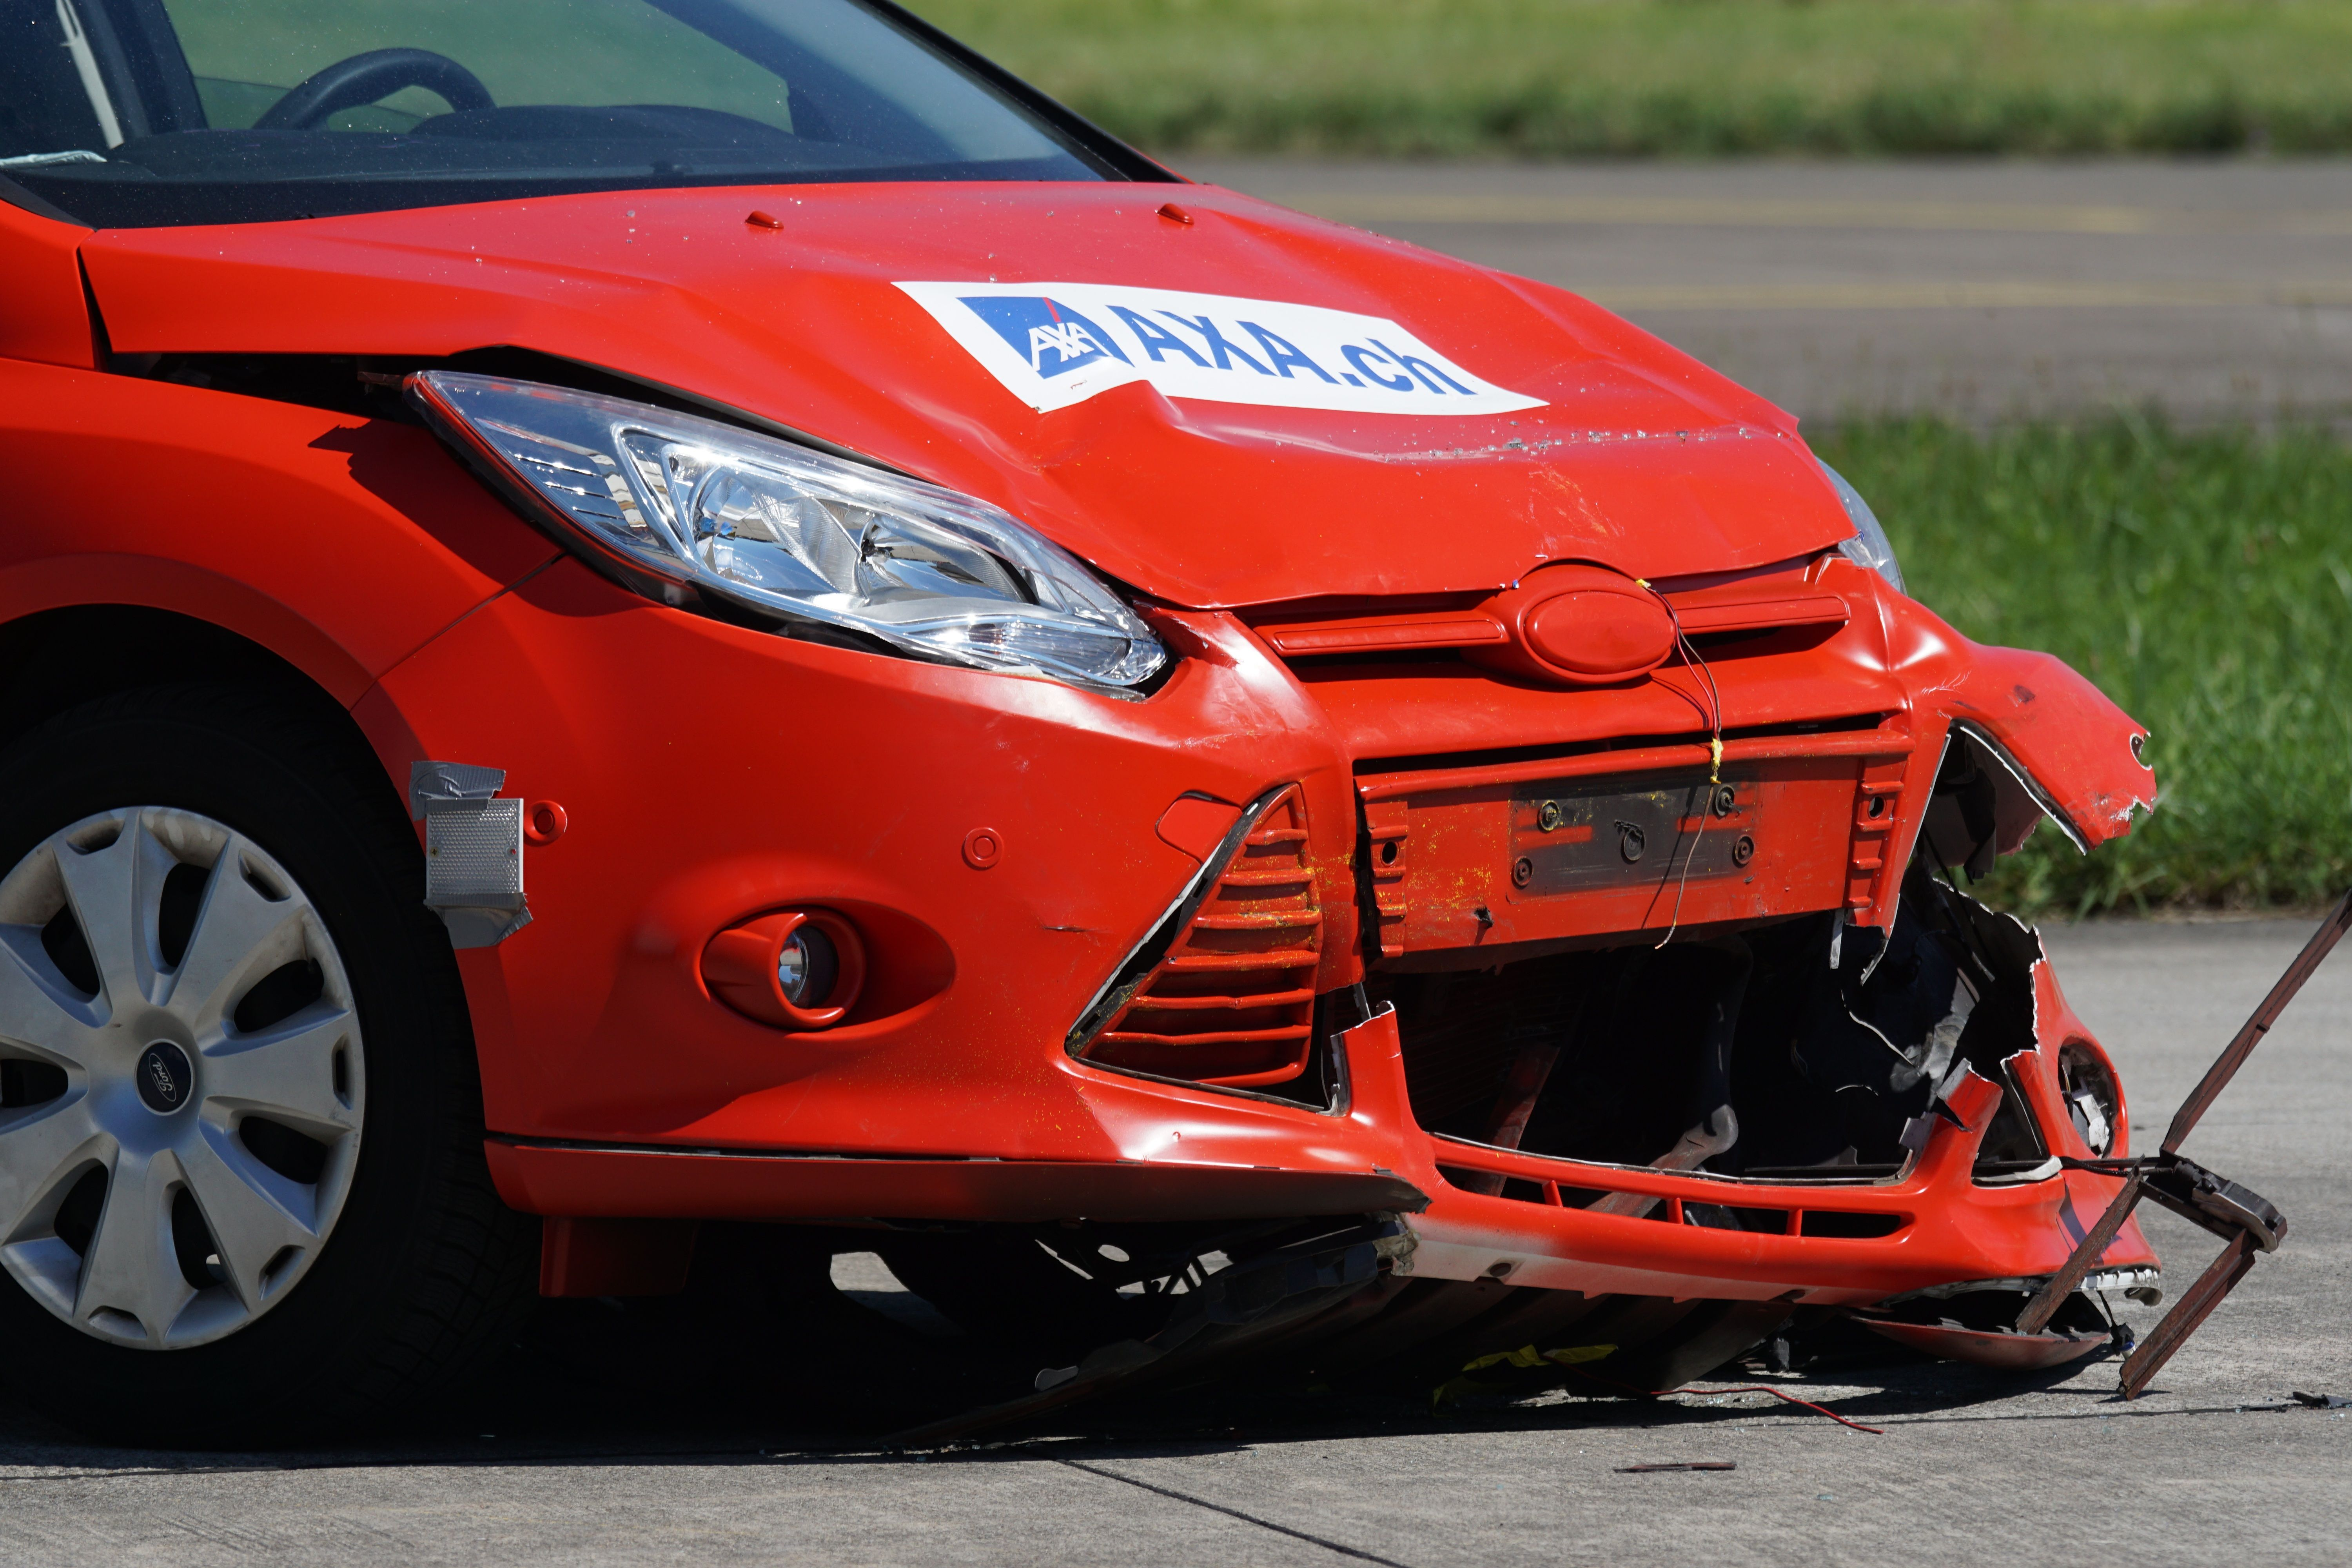 Things You Need to Know About Car Insurance in